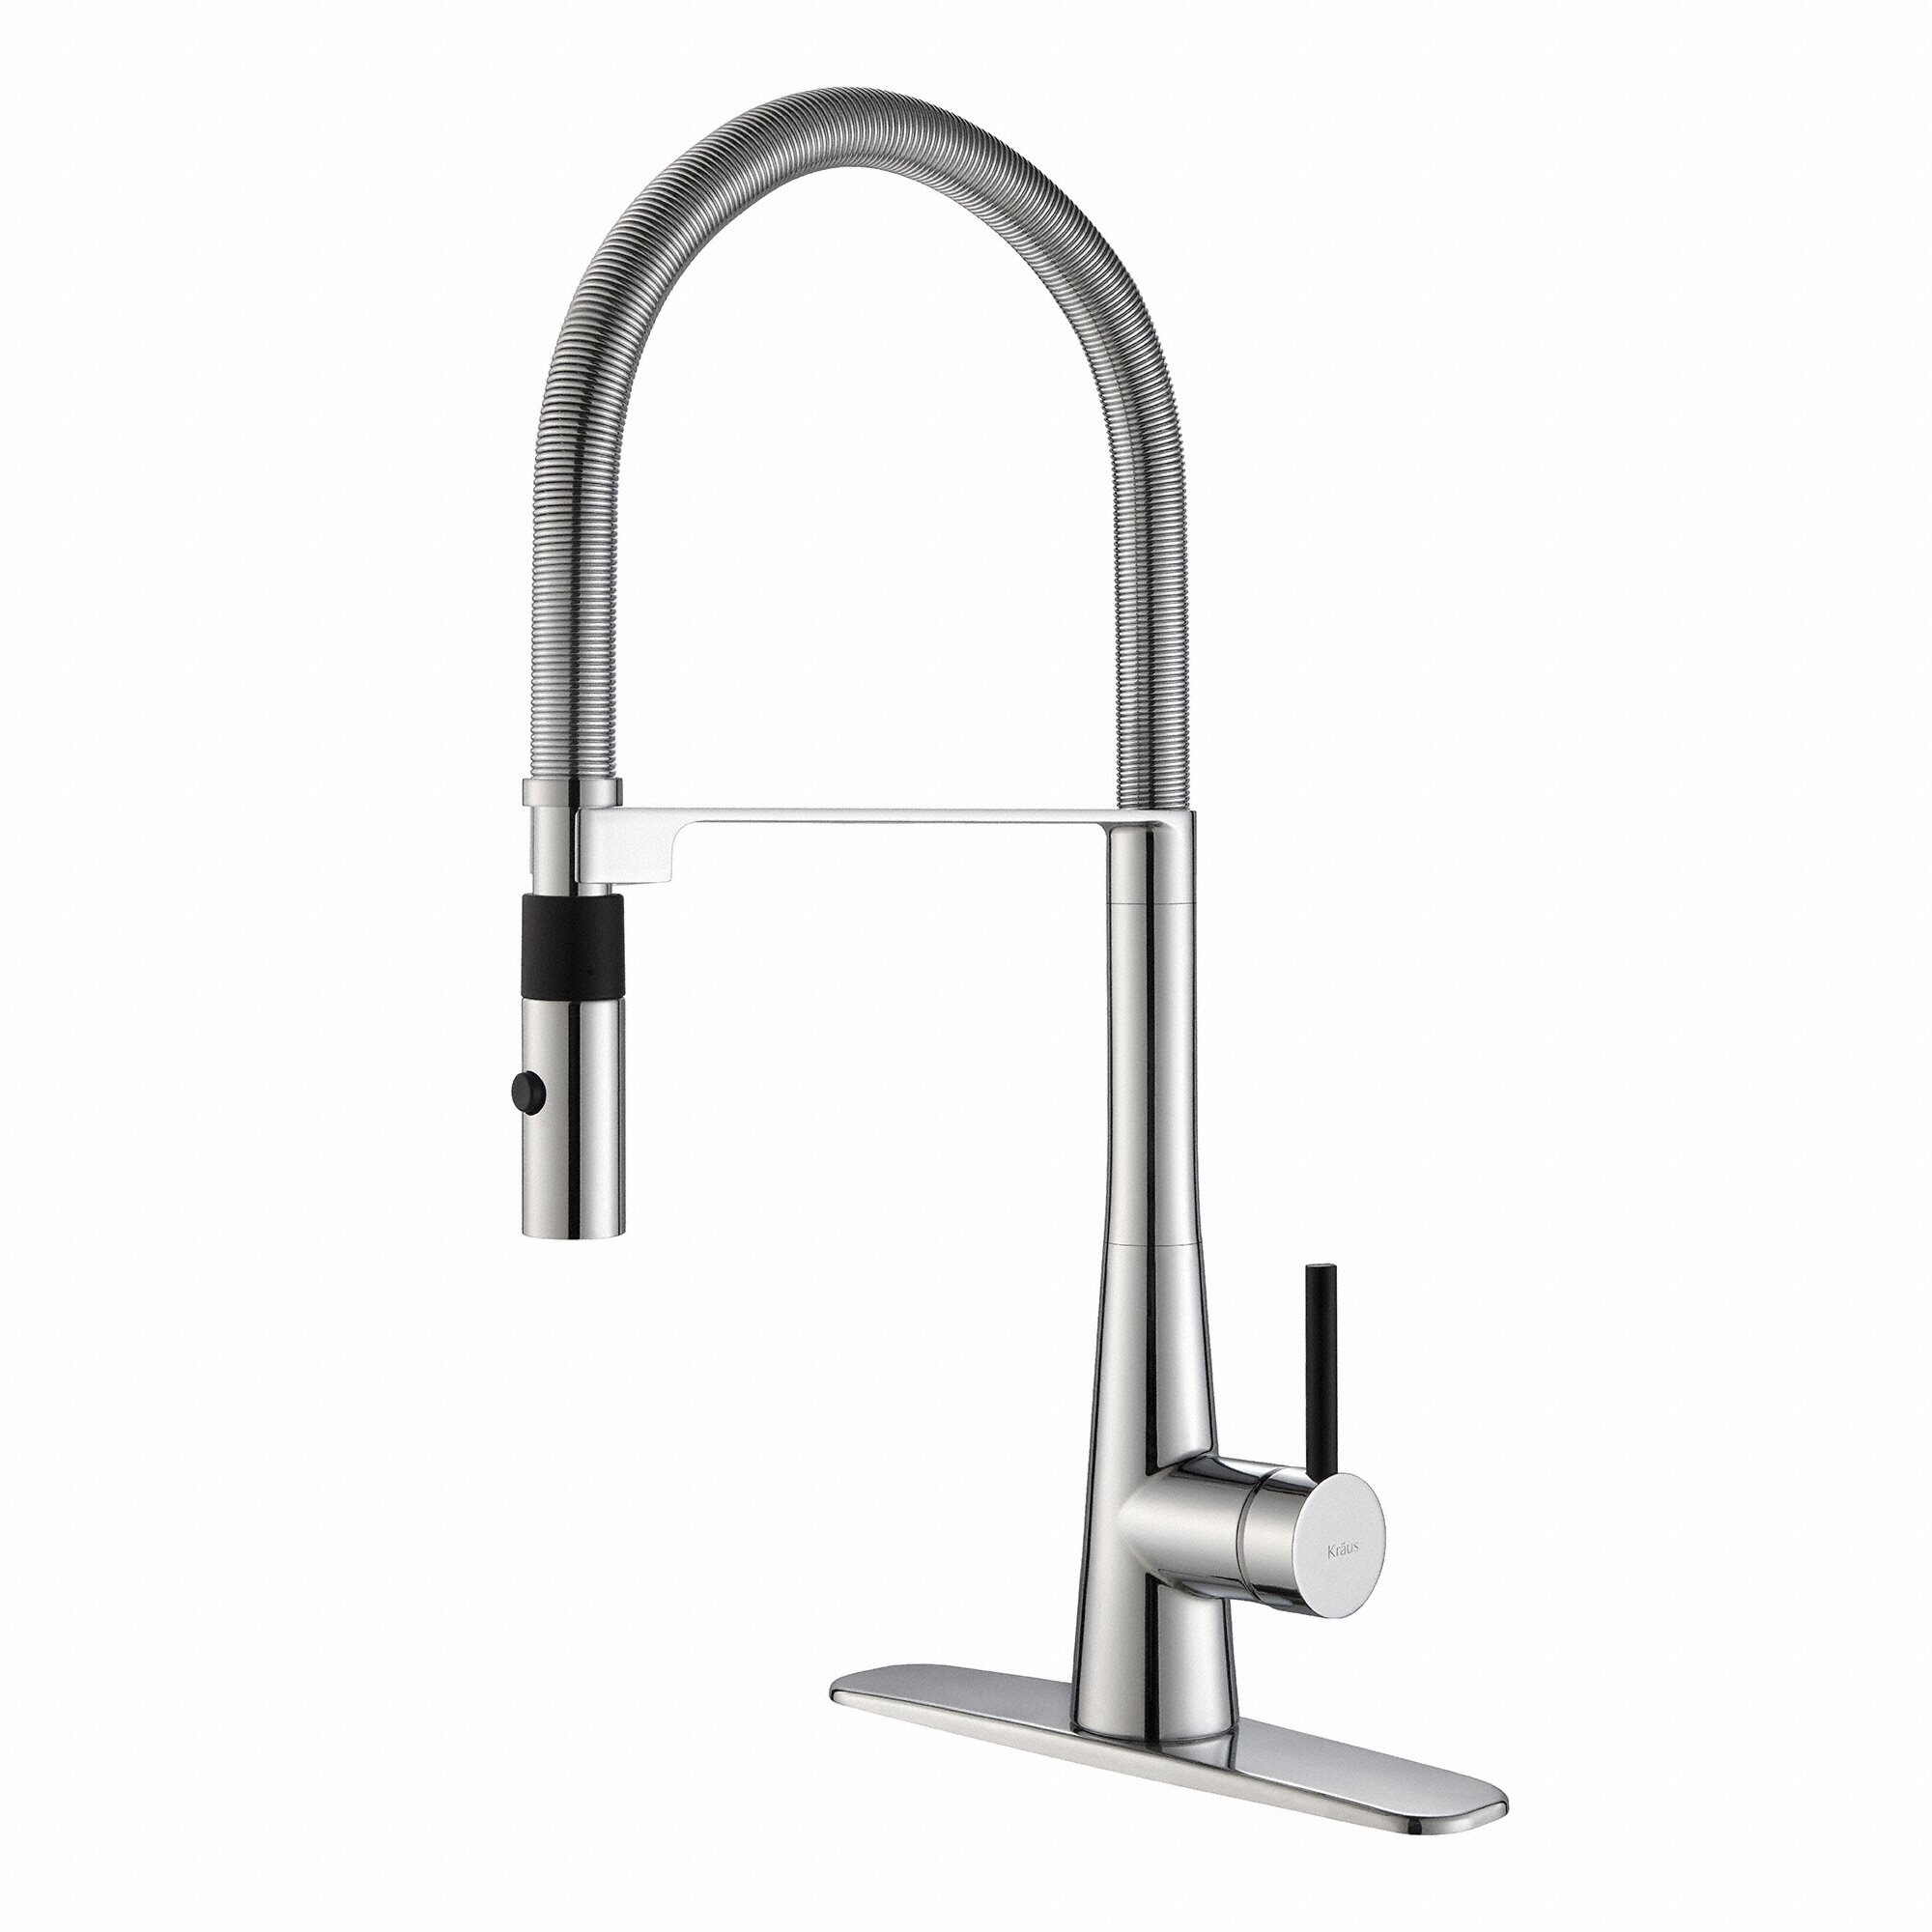 Kraus Faucets Reviews : Kraus Crespo? Single Lever Commercial Style Kitchen Faucet with Flex ...